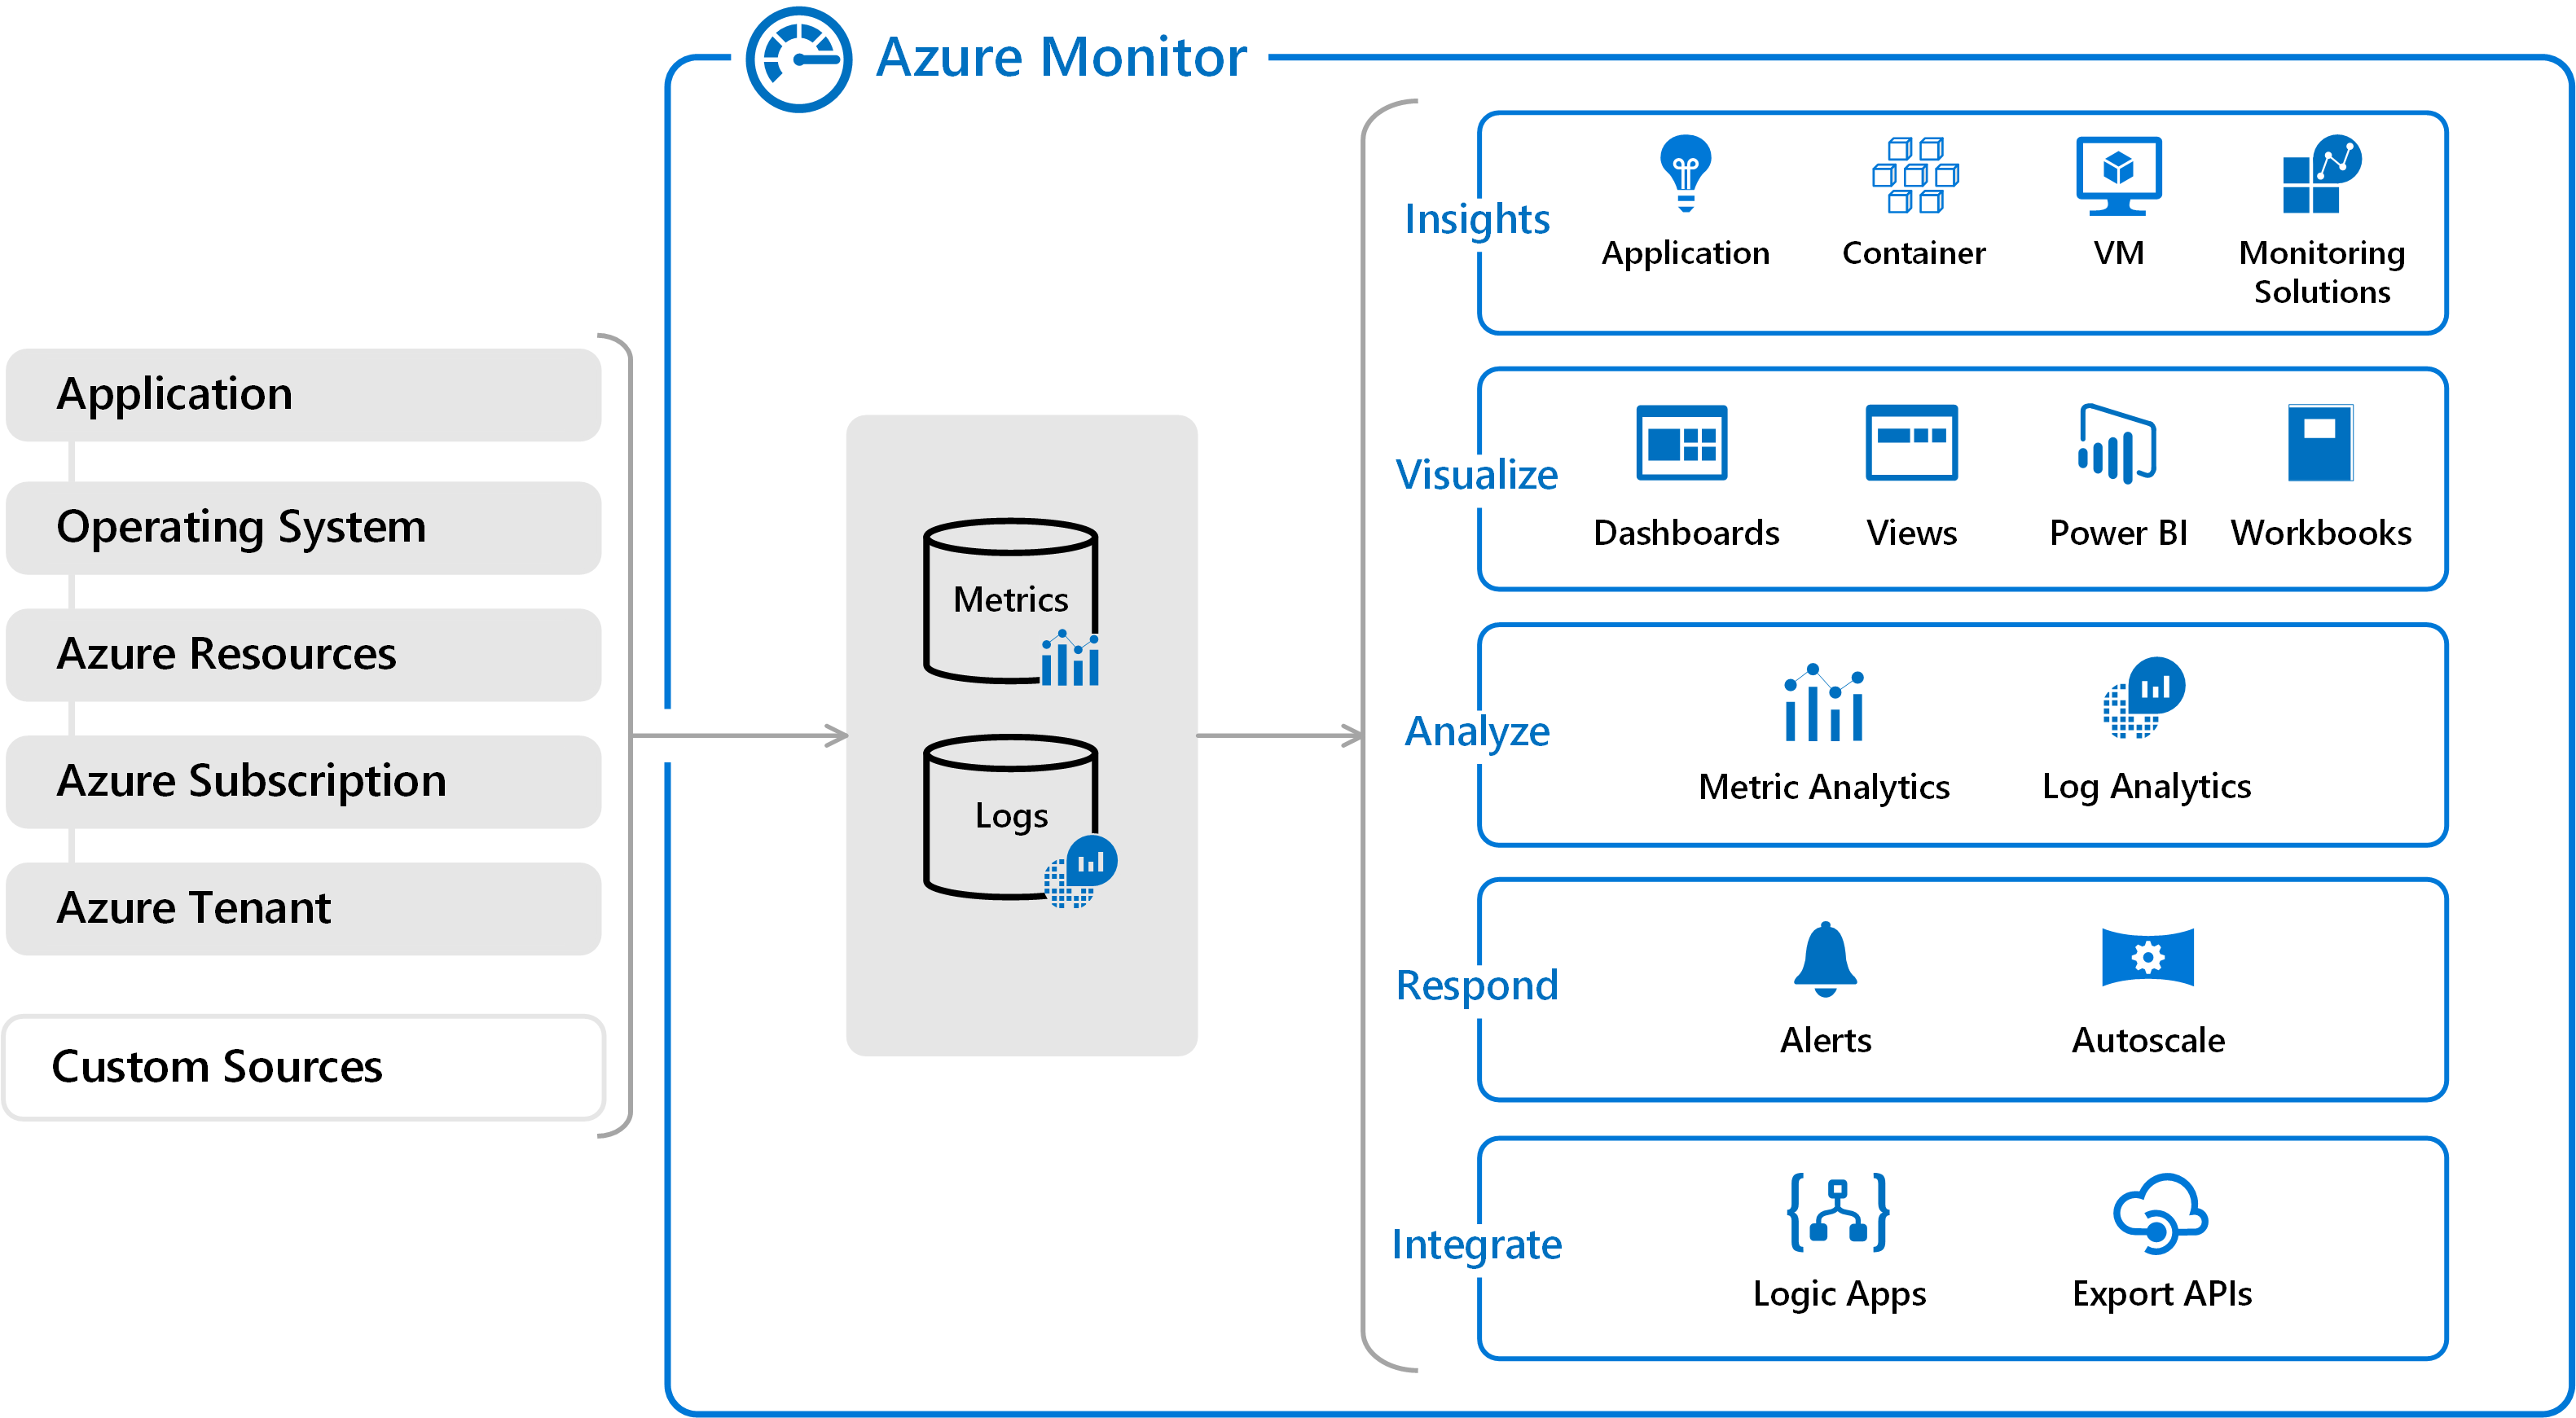 Azure Monitor Overview (https://docs.microsoft.com)